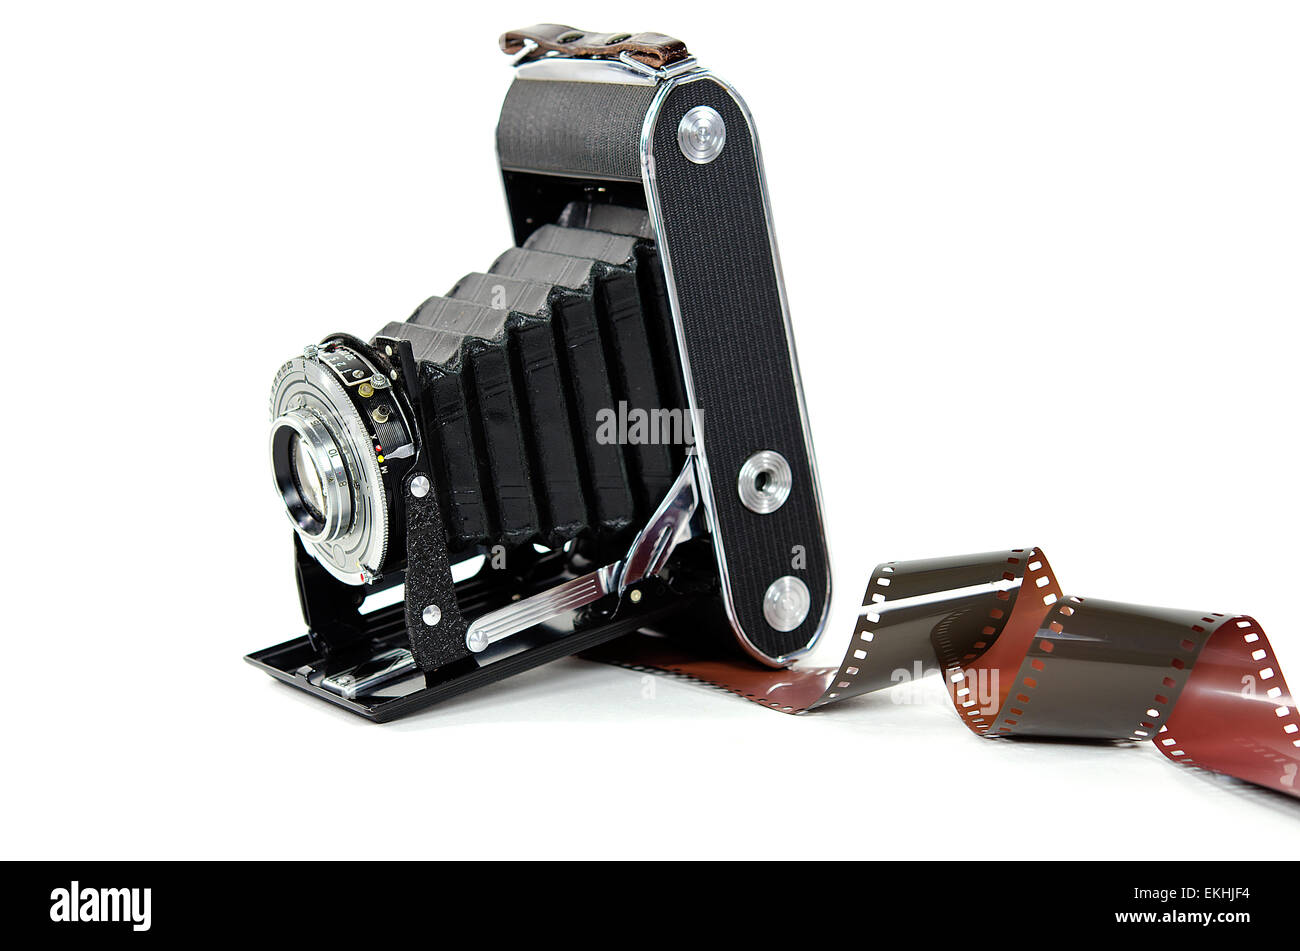 Vintage bellows camera with roll of film isolated on white. - Stock Image